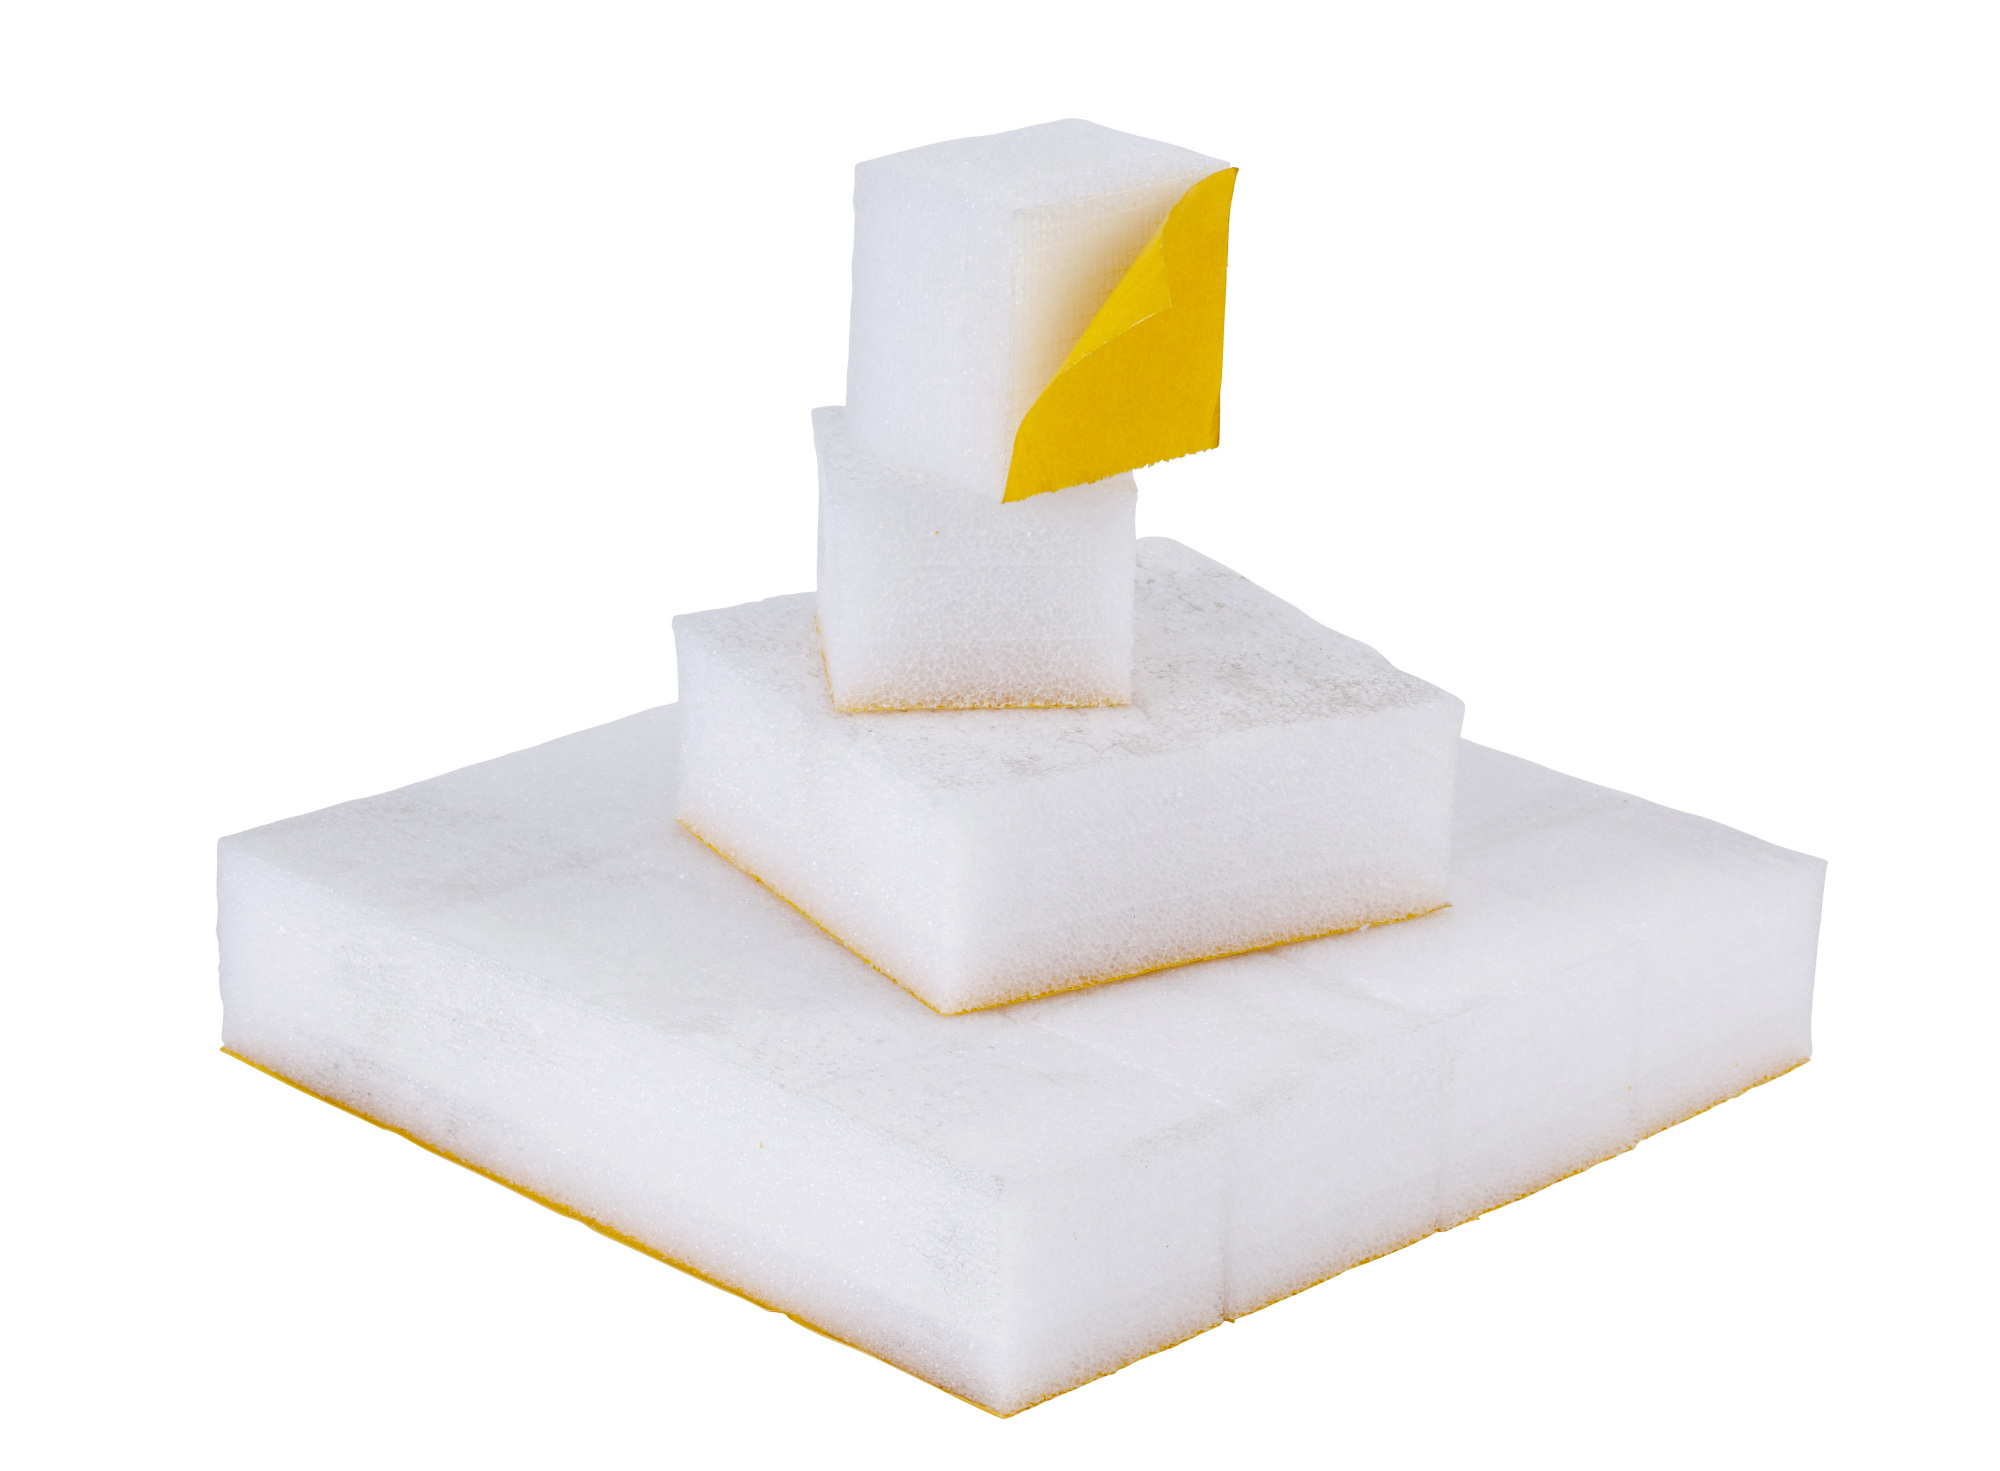 75 x 75 x 60mm White Self Adhesive Foam Block (320/box)